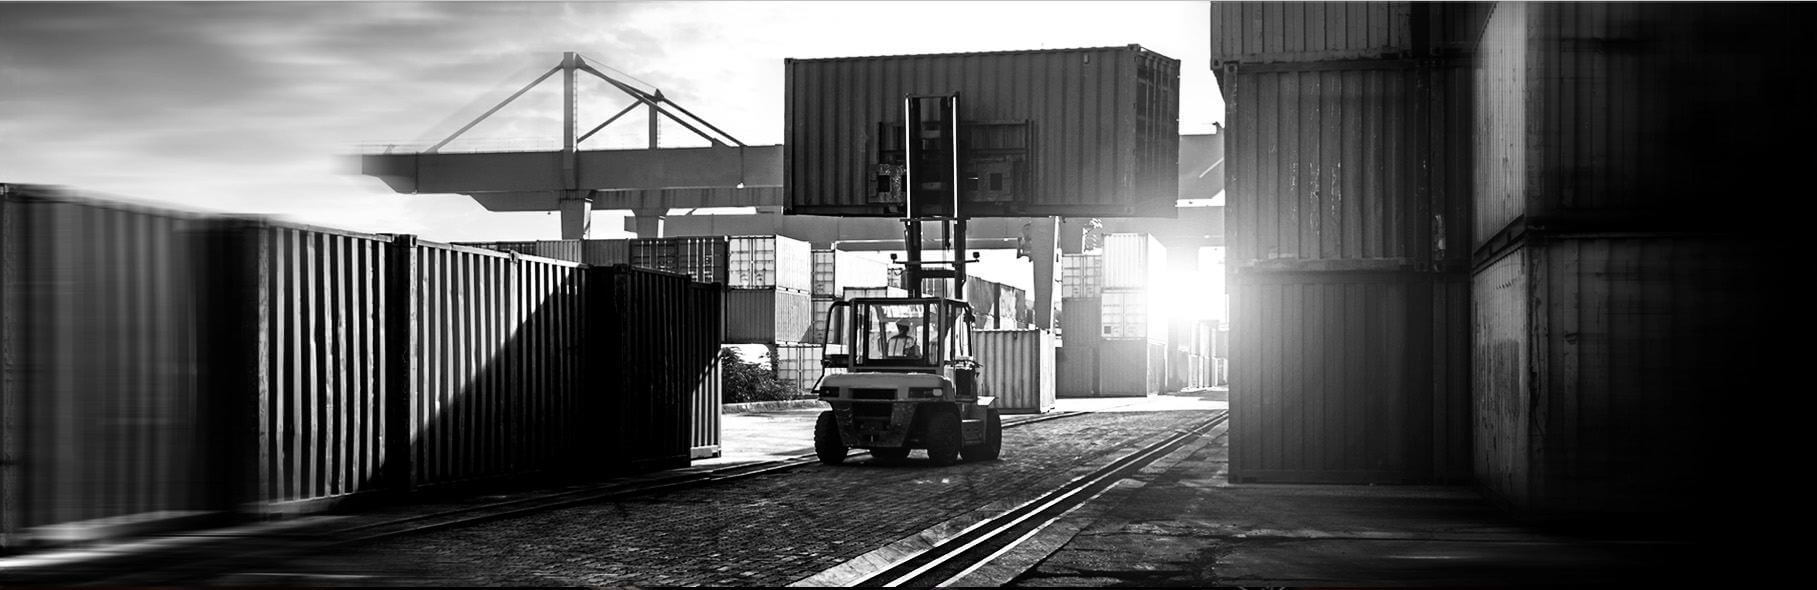 abc-container-vermietung